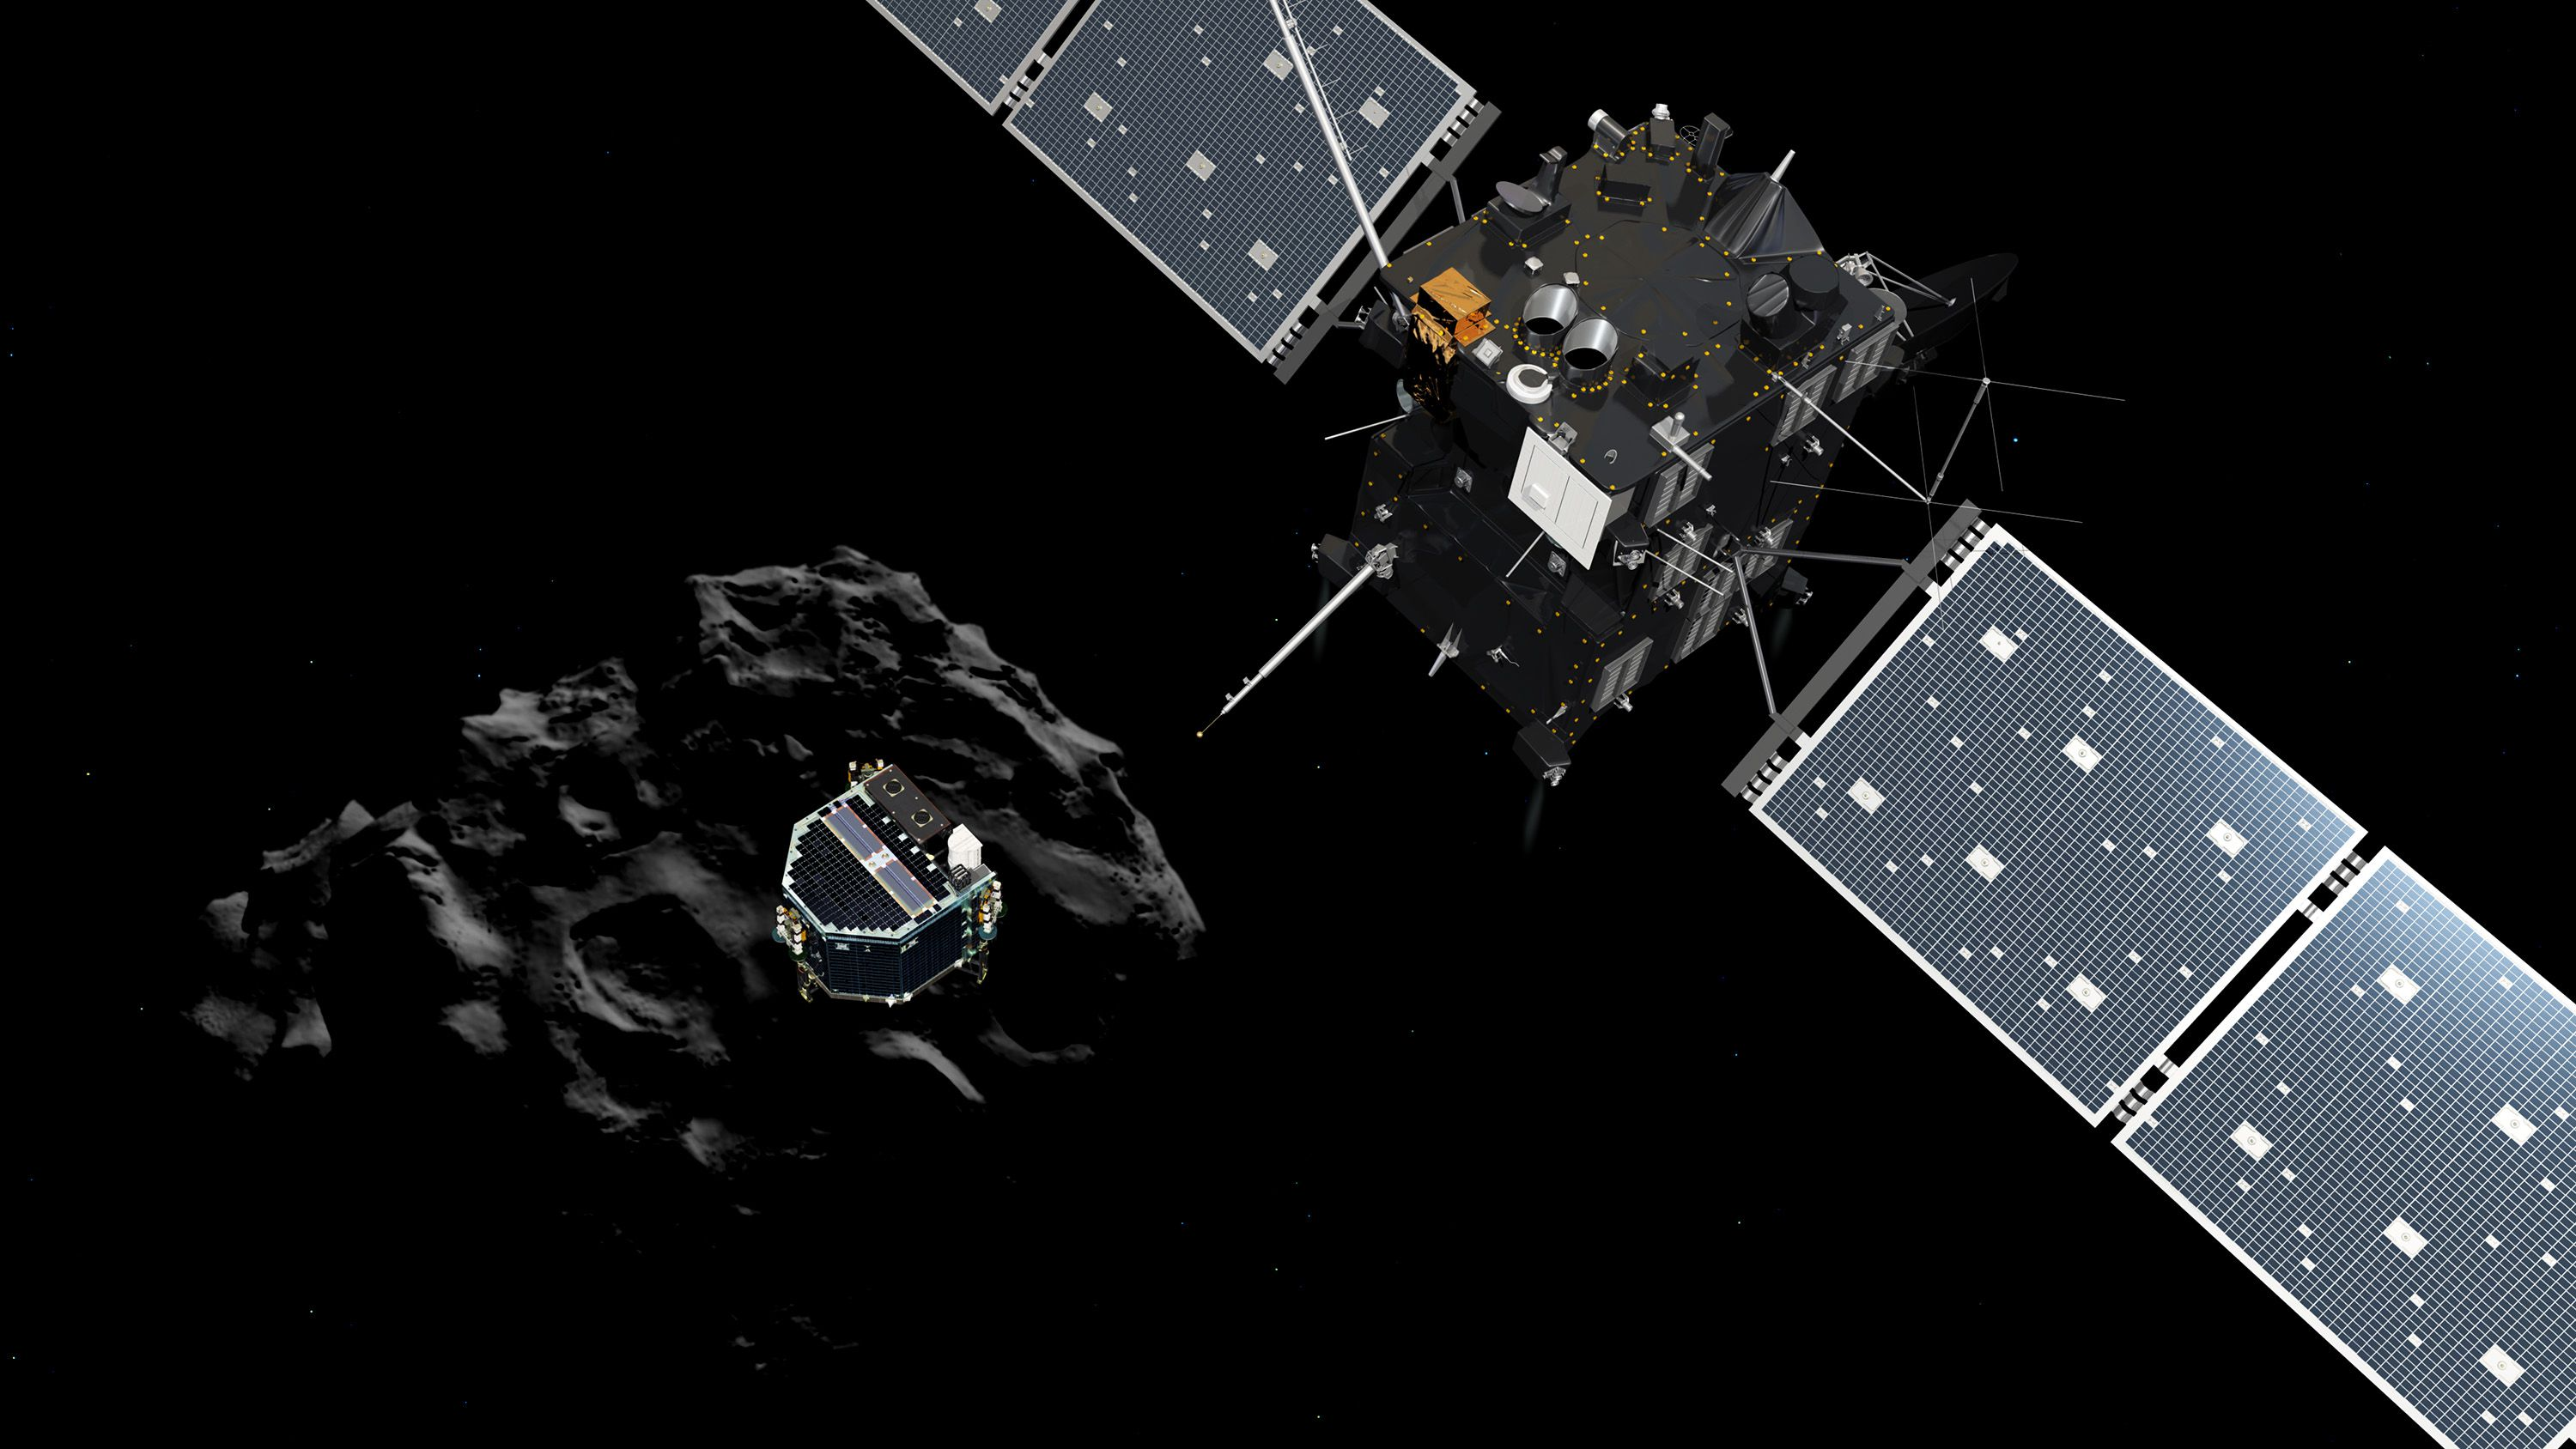 See the first shots from the Rosetta mission's successful ...